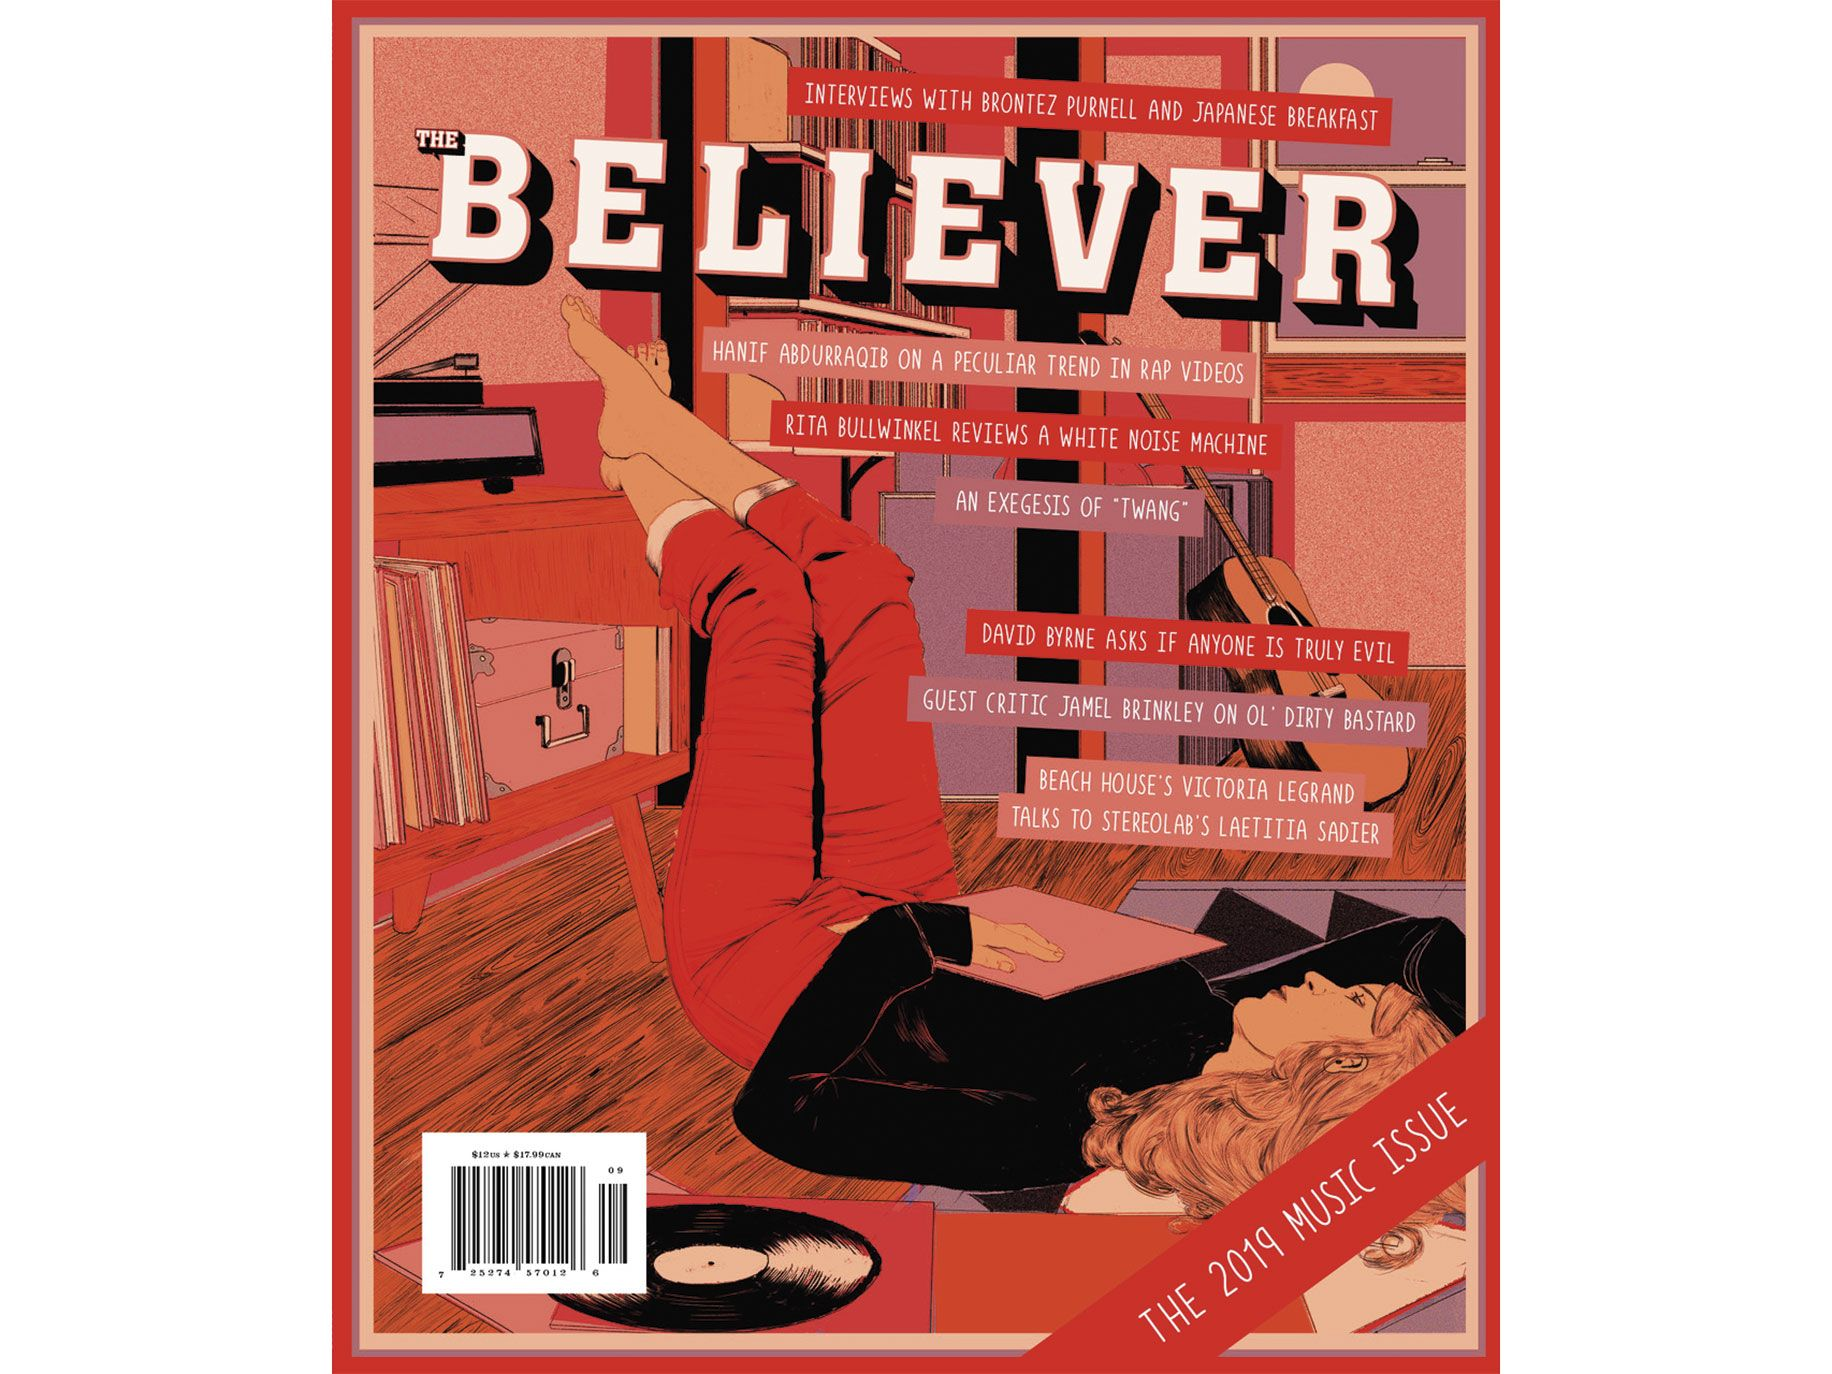 The Believer's new cover design